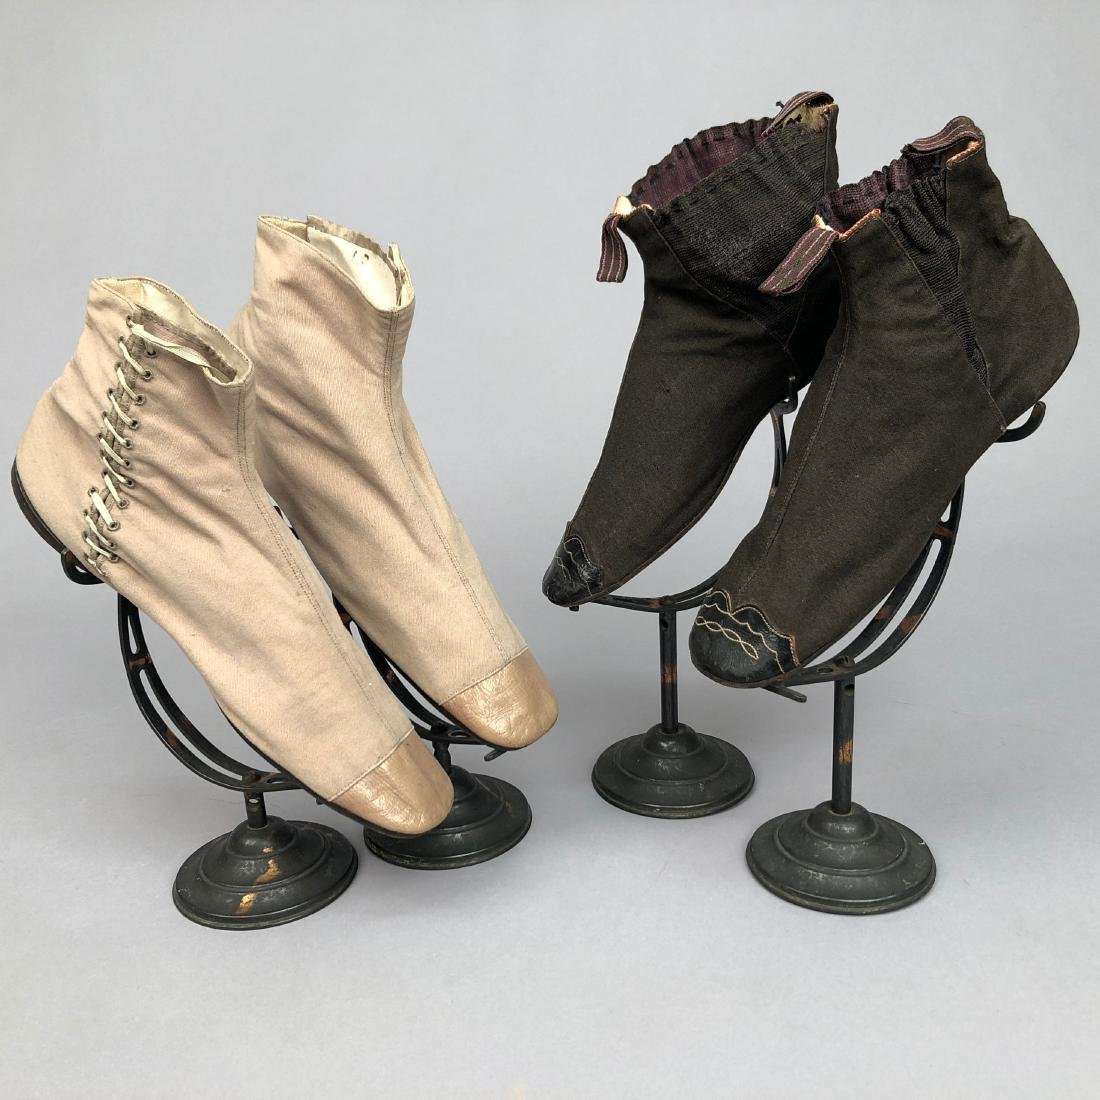 TWO PAIR WOOL BOOTS with LEATHER CAP TOE, 1830s